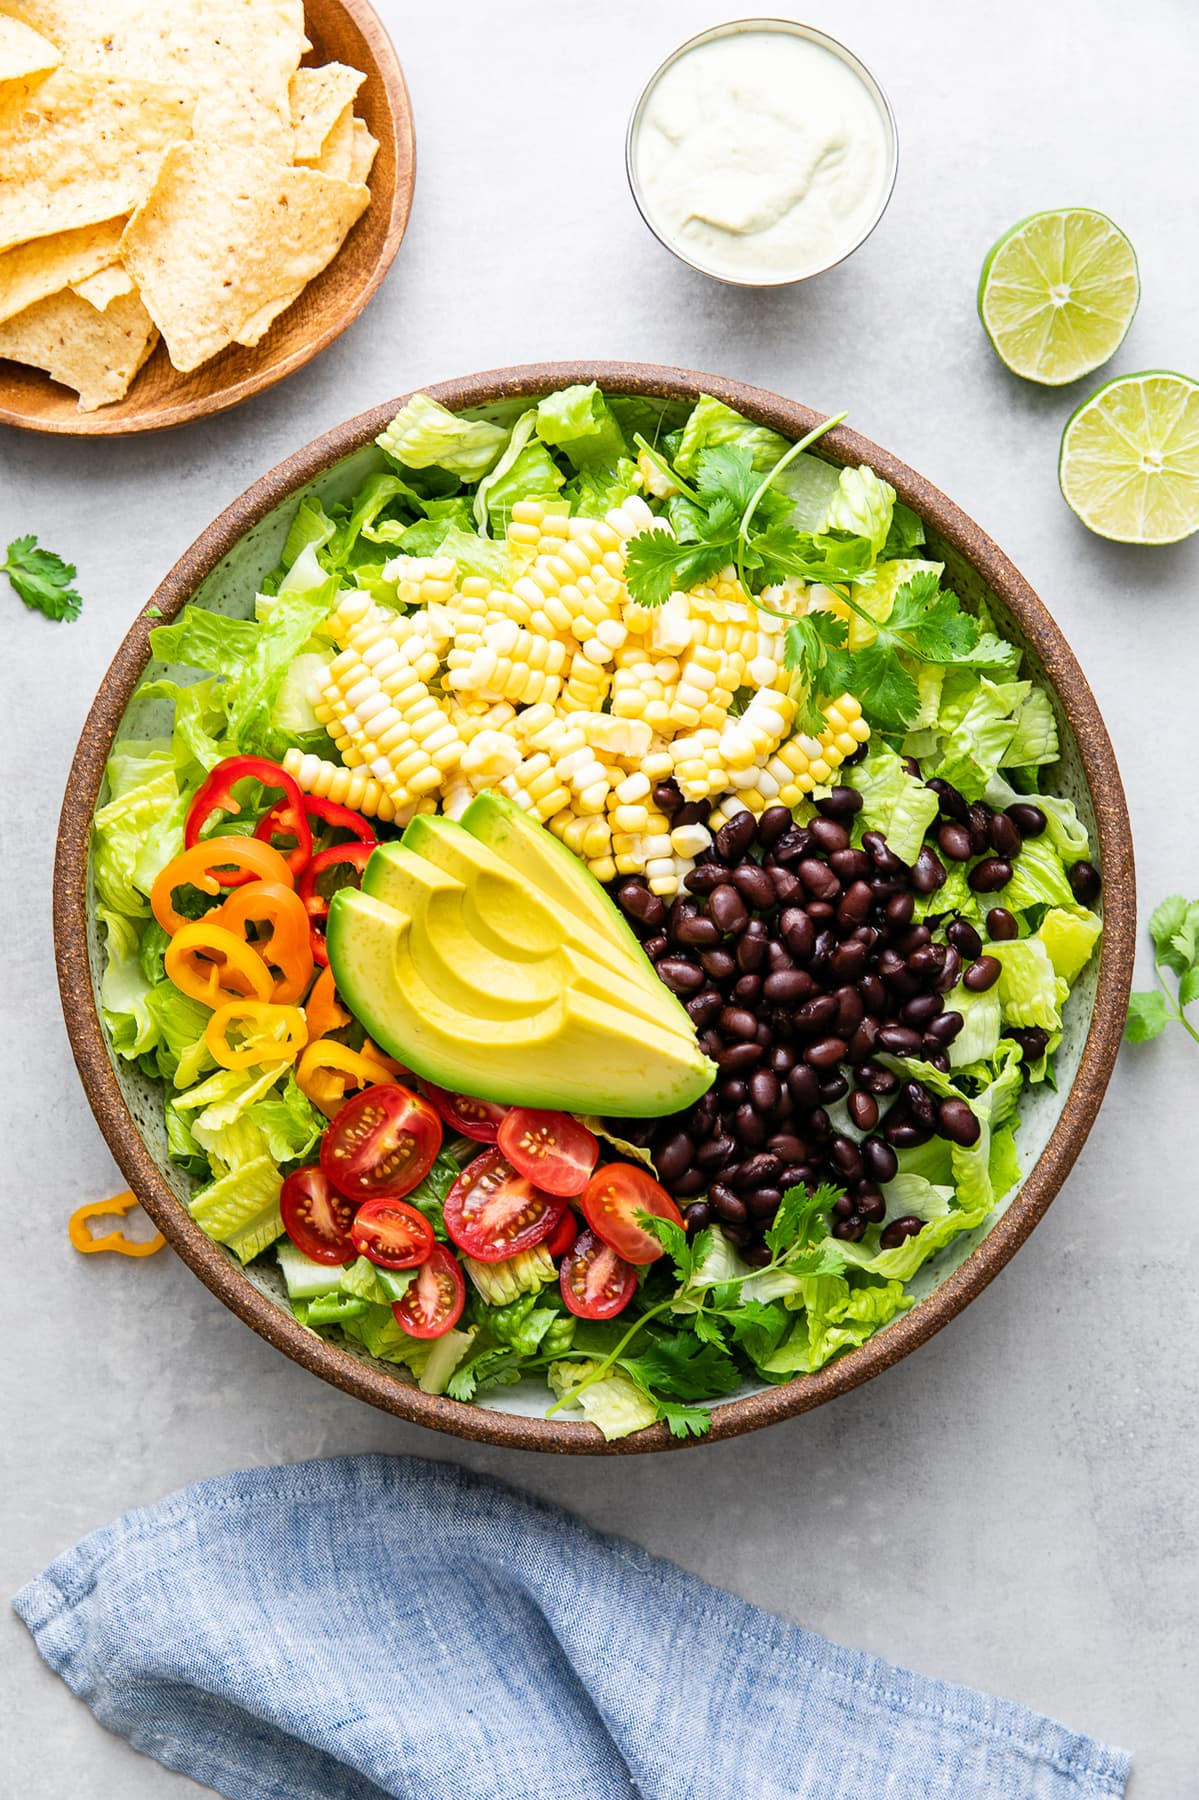 top down view of bowl filled with the ingredients to make vegan southwest salad with items surrounding.